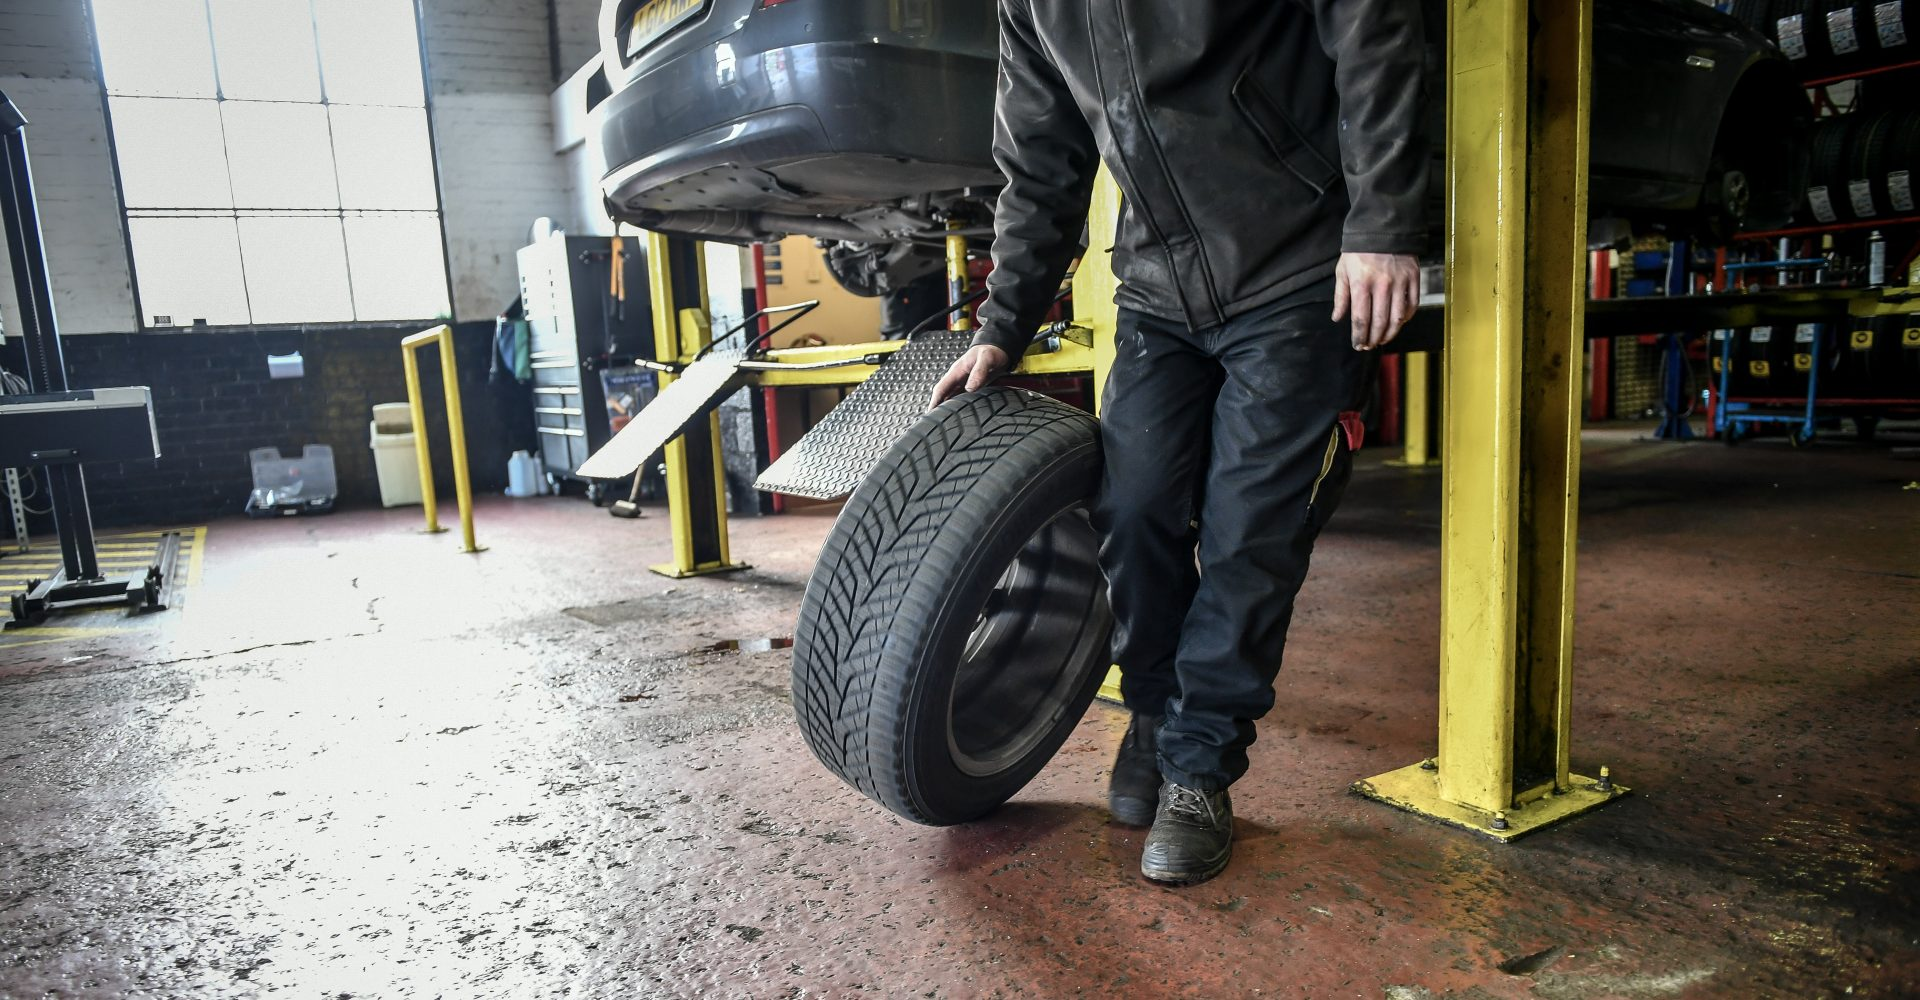 Cars, motorcycles and vans to be granted six-month MOT exemption